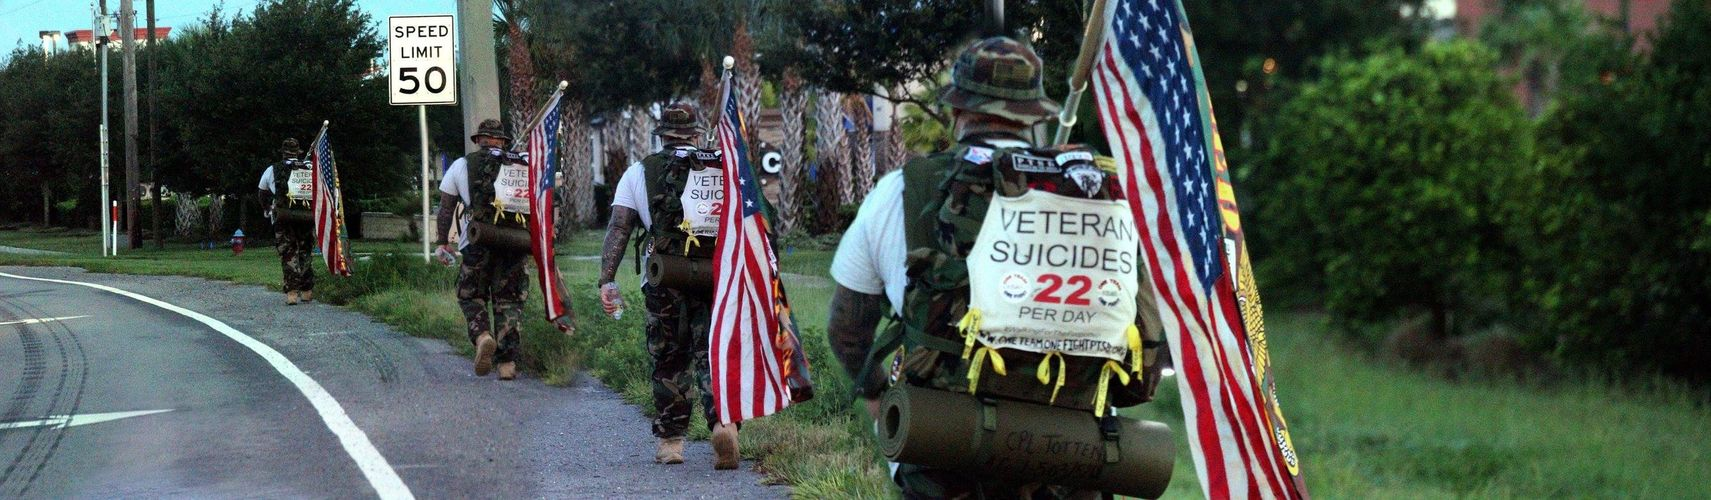 Ruck Marching Lake County, Florida to bring awareness of veteran suicide and support those battling